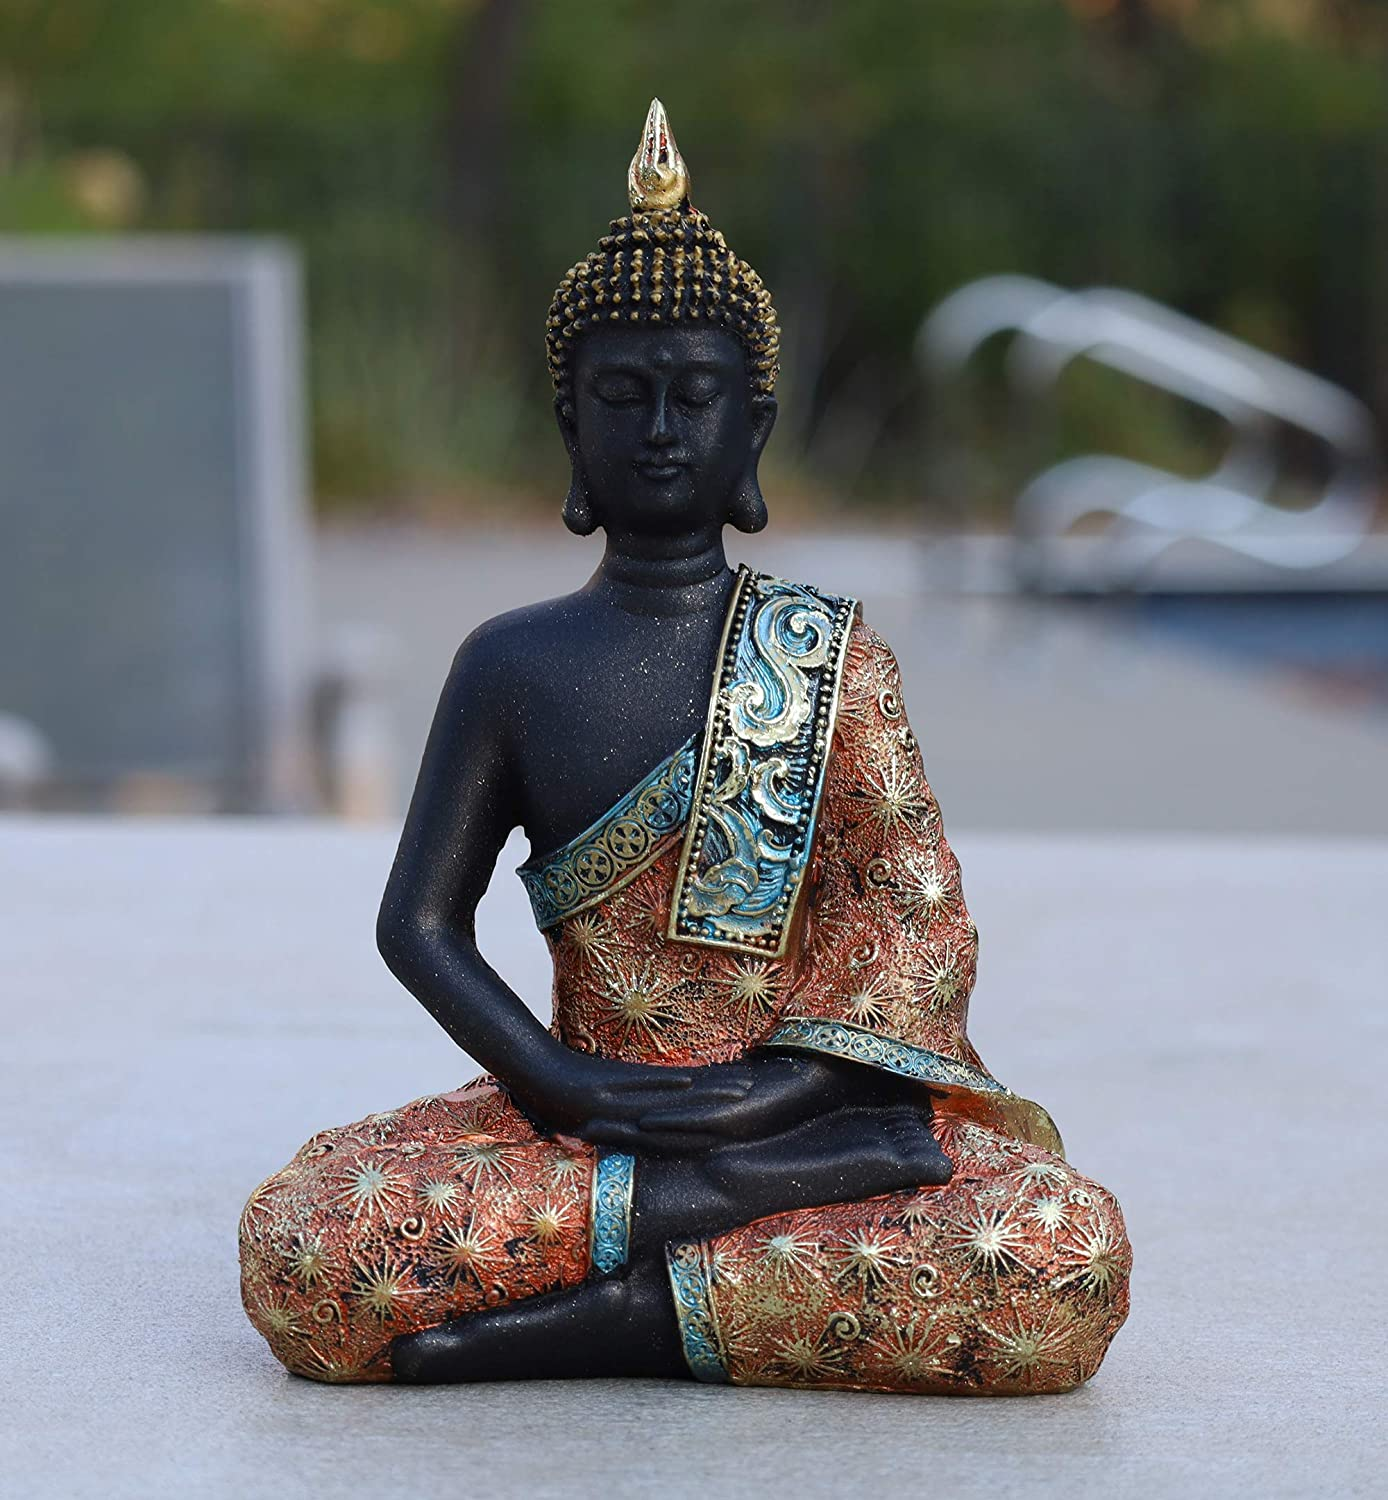 small-buddha-statue-red-blue-and-gold-unique-modern-buddhist-decor-for-home-office-meditation-area-bedroom